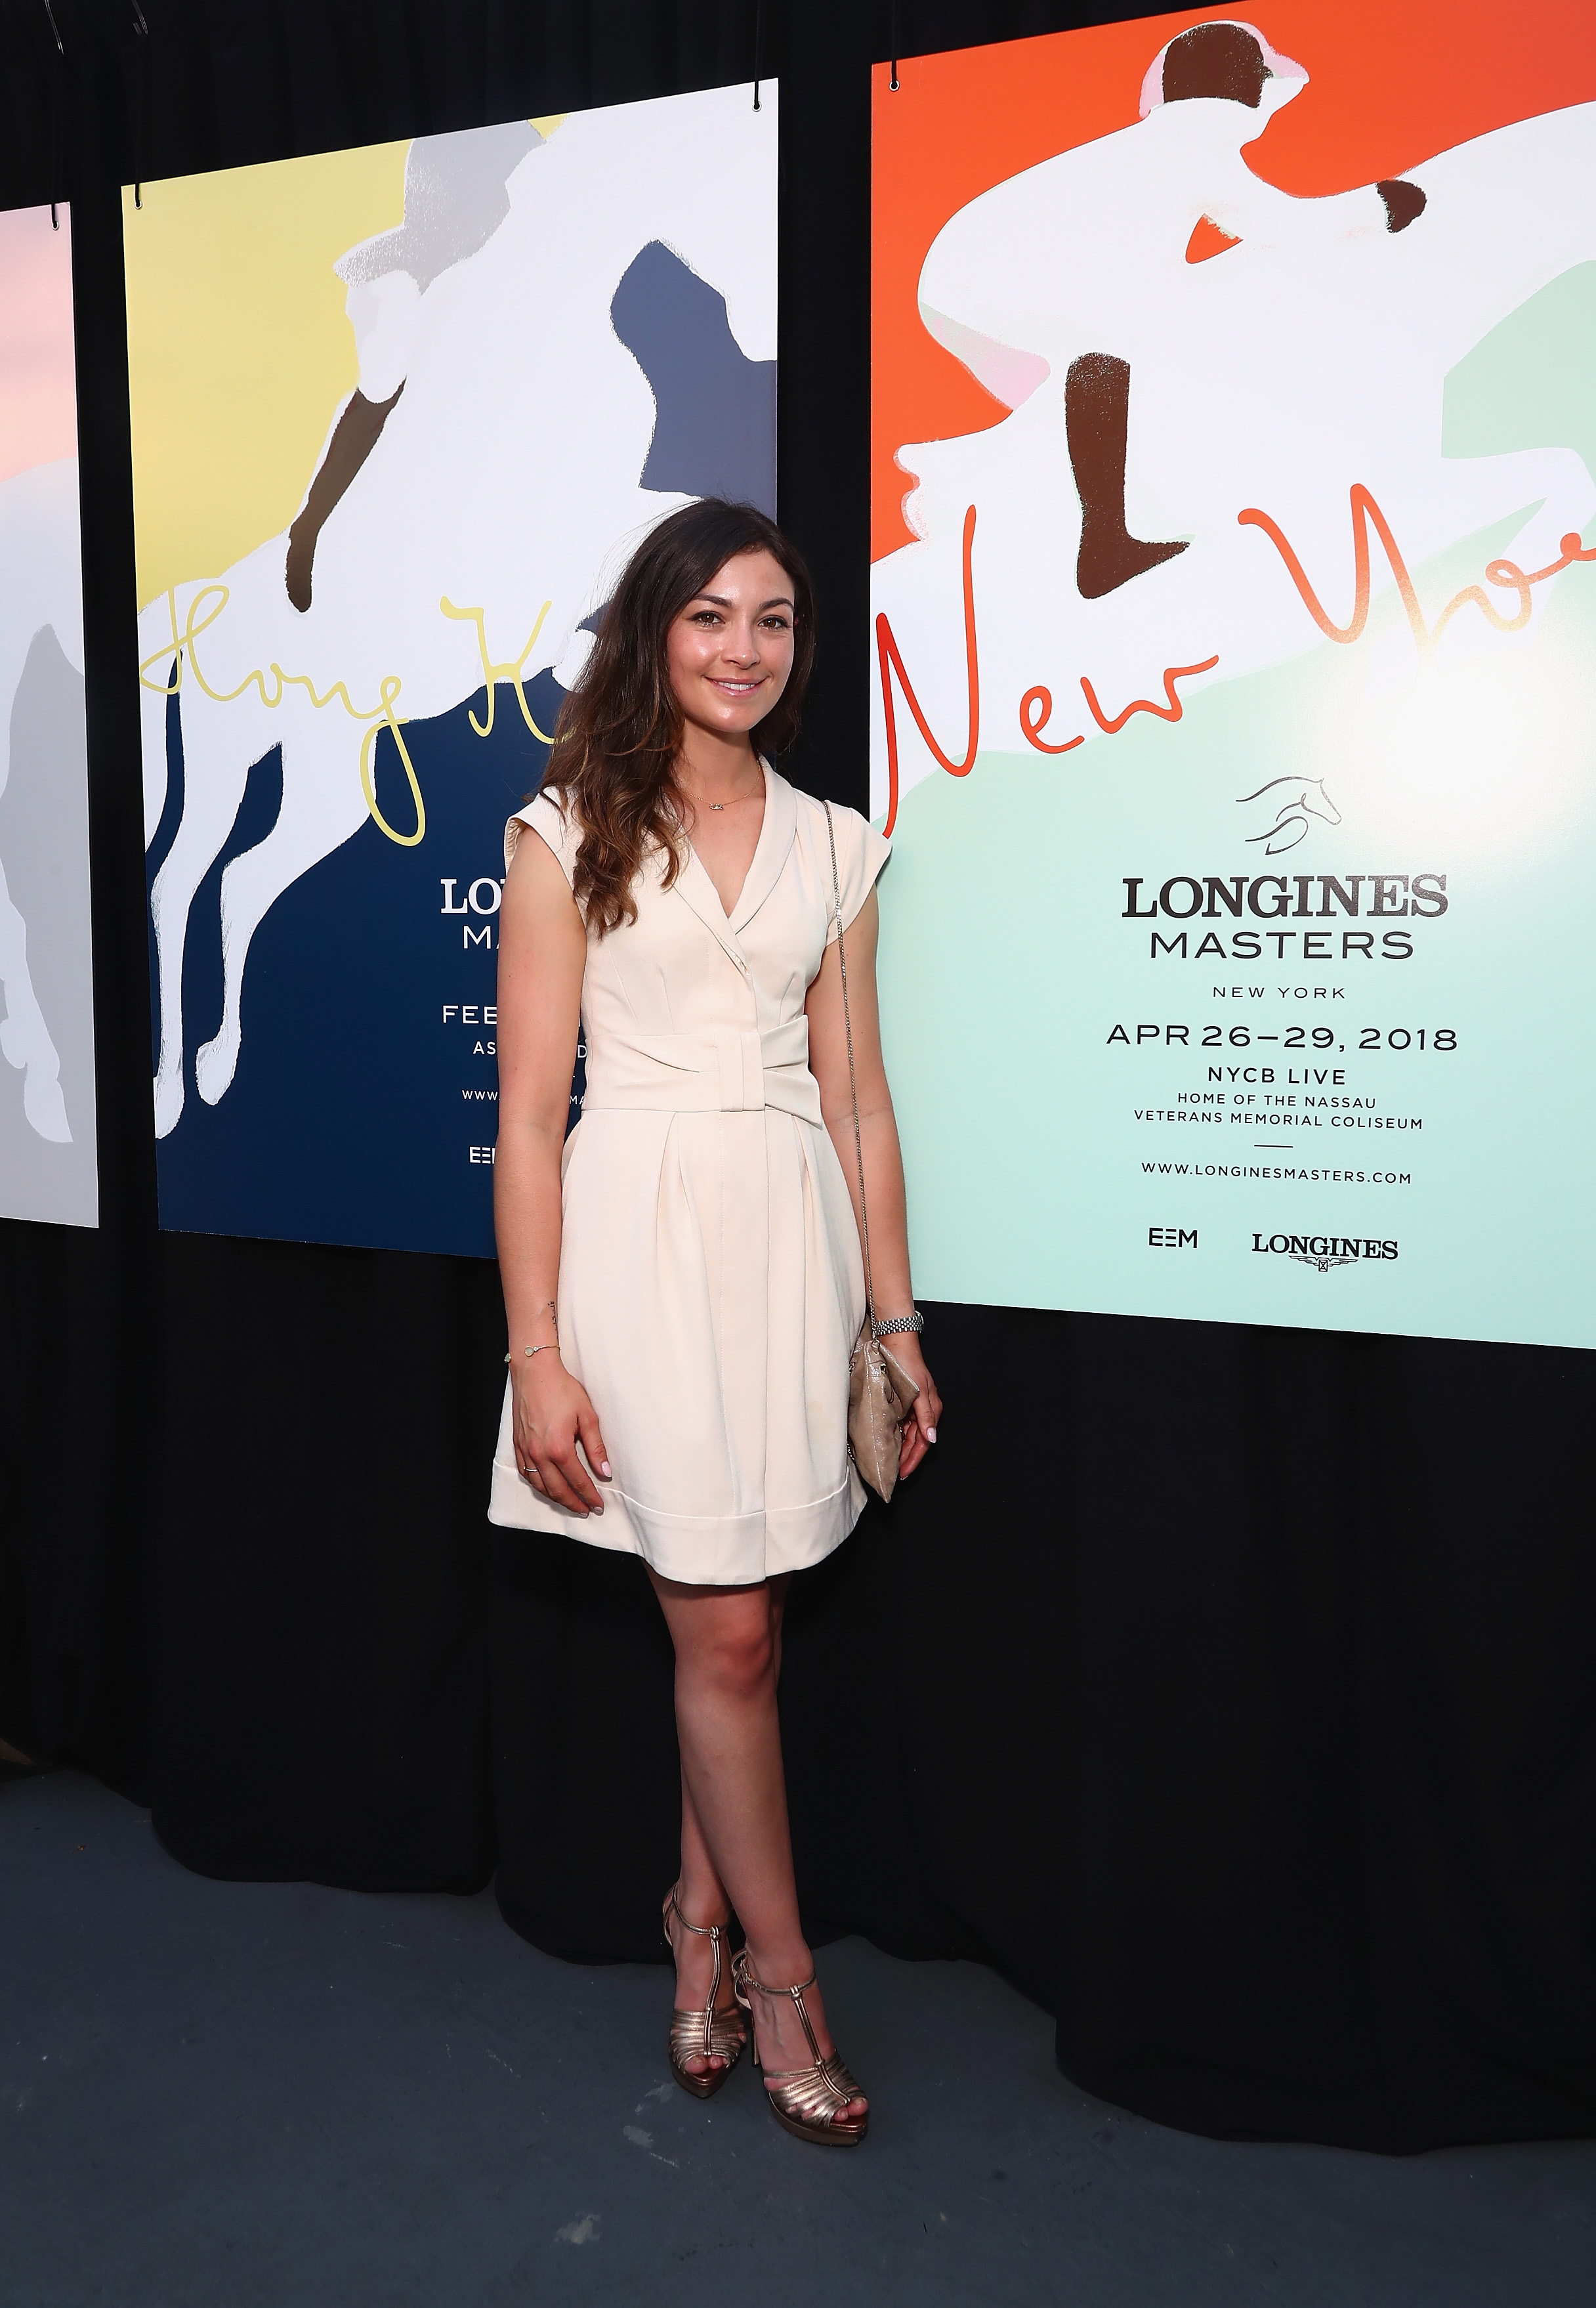 NEW YORK, NY - MAY 17: Reed Kessler attends the Longines Masters launch party celebrating Series' epic move to New York at Salon de Ning on May 17, 2017 in New York City. (Photo by Astrid Stawiarz/Getty Images for Longines)